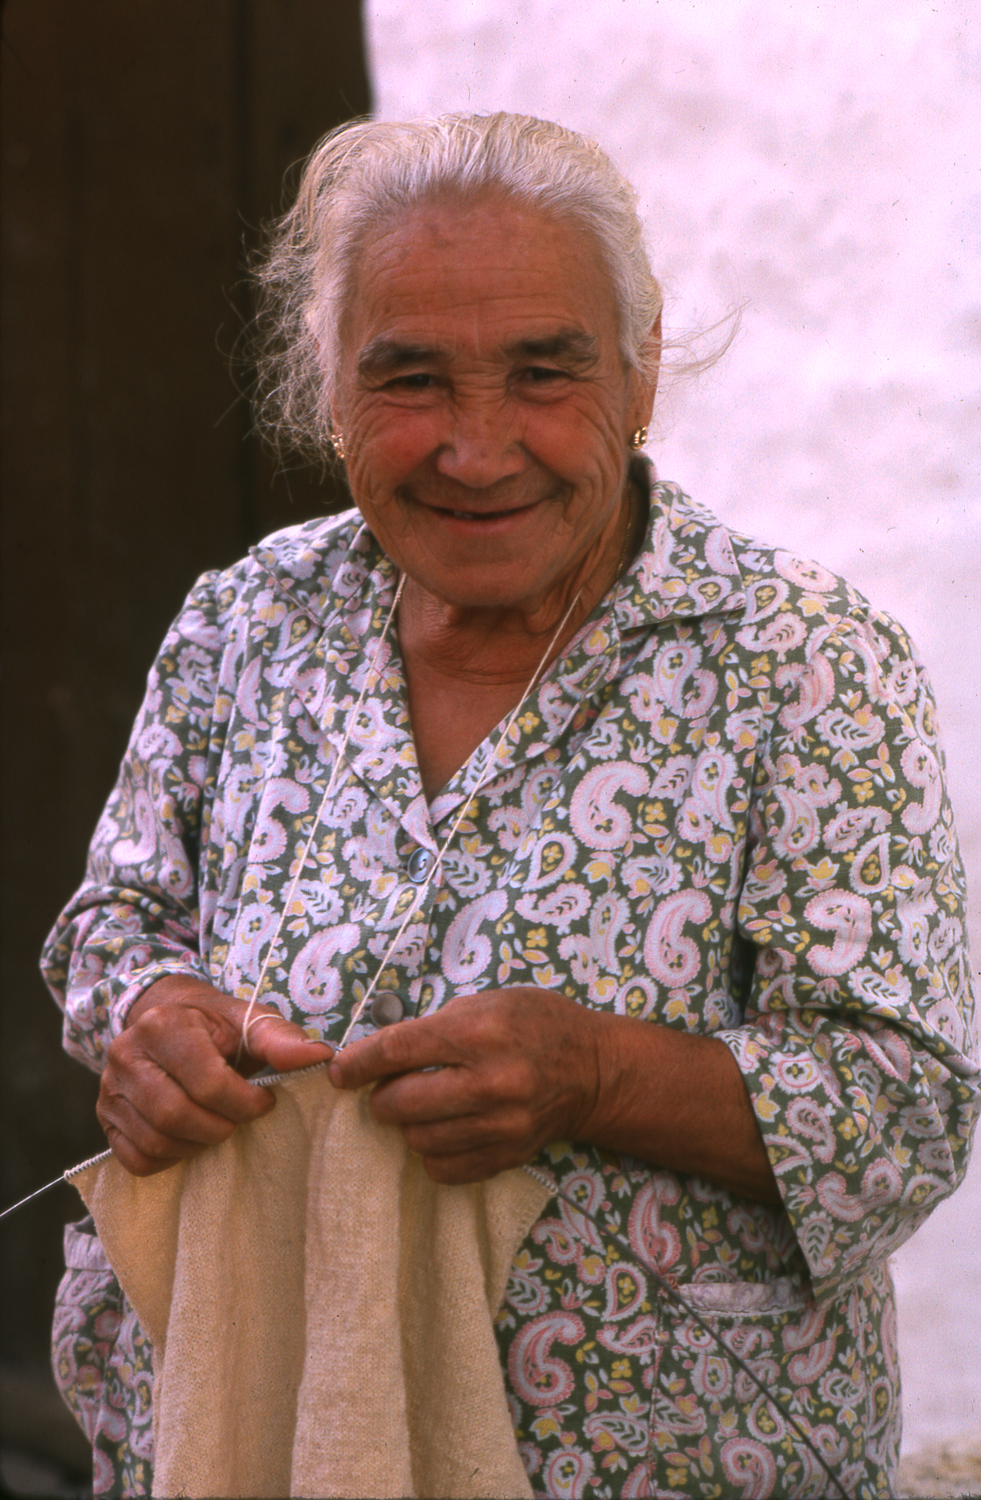 GRAY HAIR LADY SEWING, web.jpg